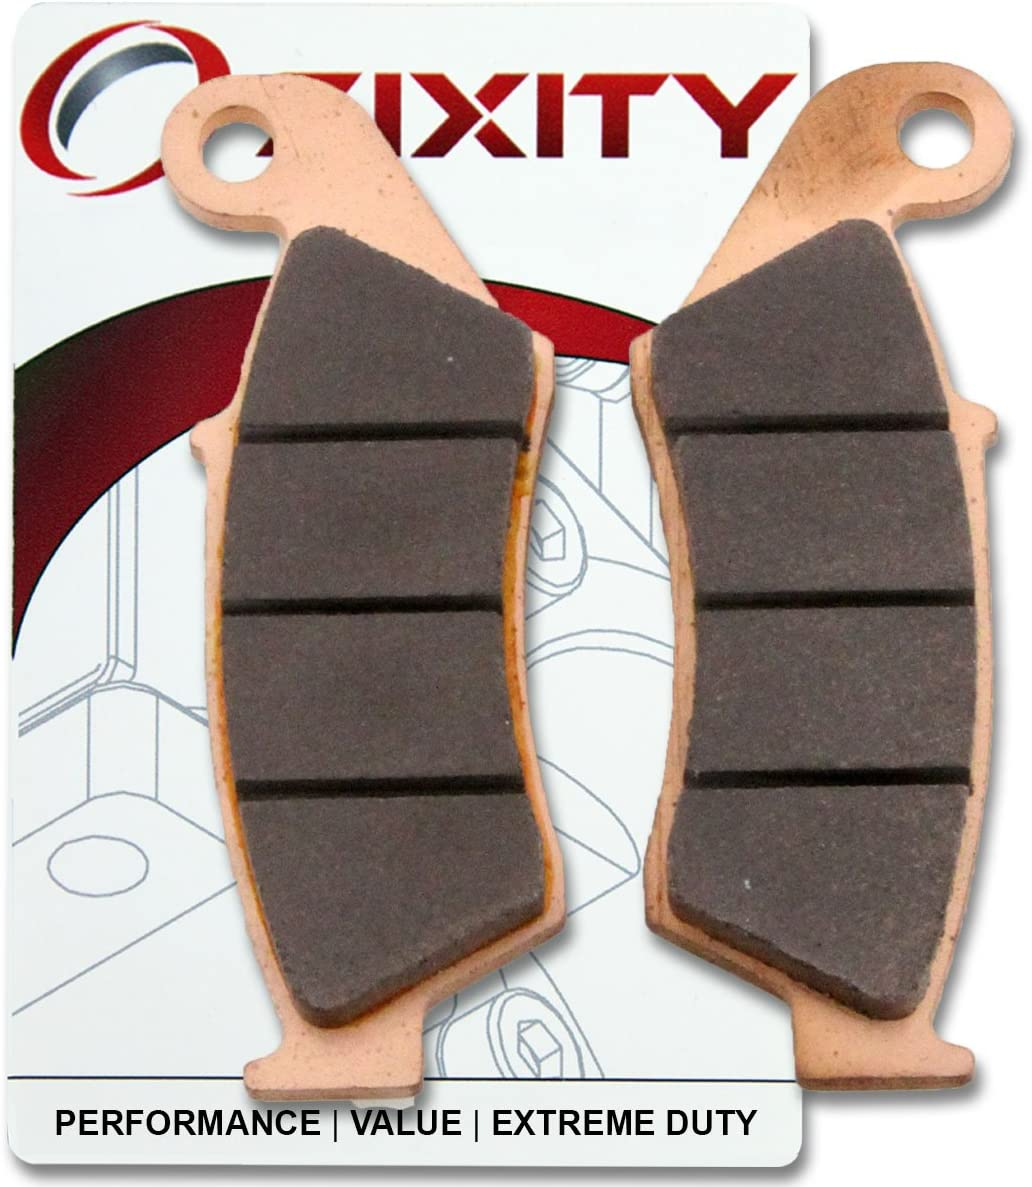 Sixity Front Sintered Brake Pads 2013-2015 for Suzuki DR-Z400SM Set Full Kit SMK5 SMK6 SMK7 SMK8 SMK9 SML3 SML4 SML5 Complete